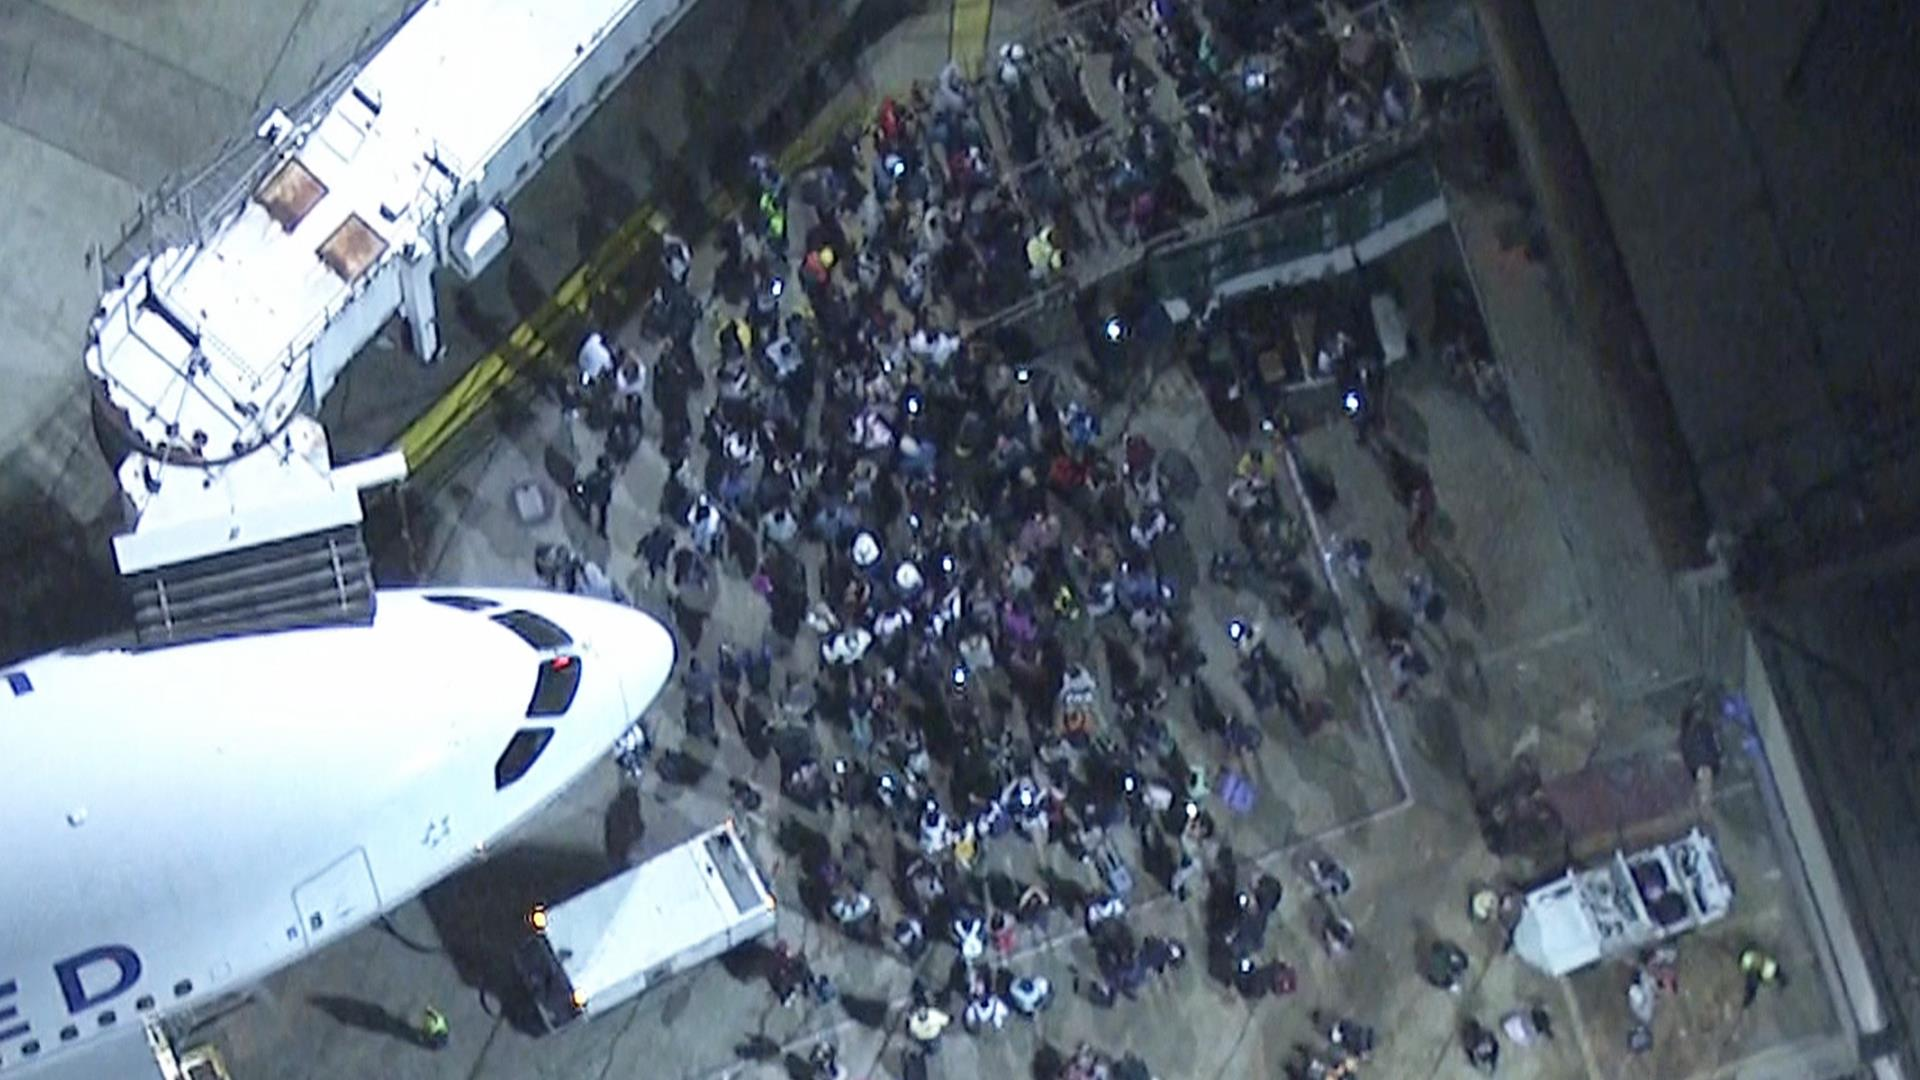 Lax In Chaos After False Reports Of An Active Shooter